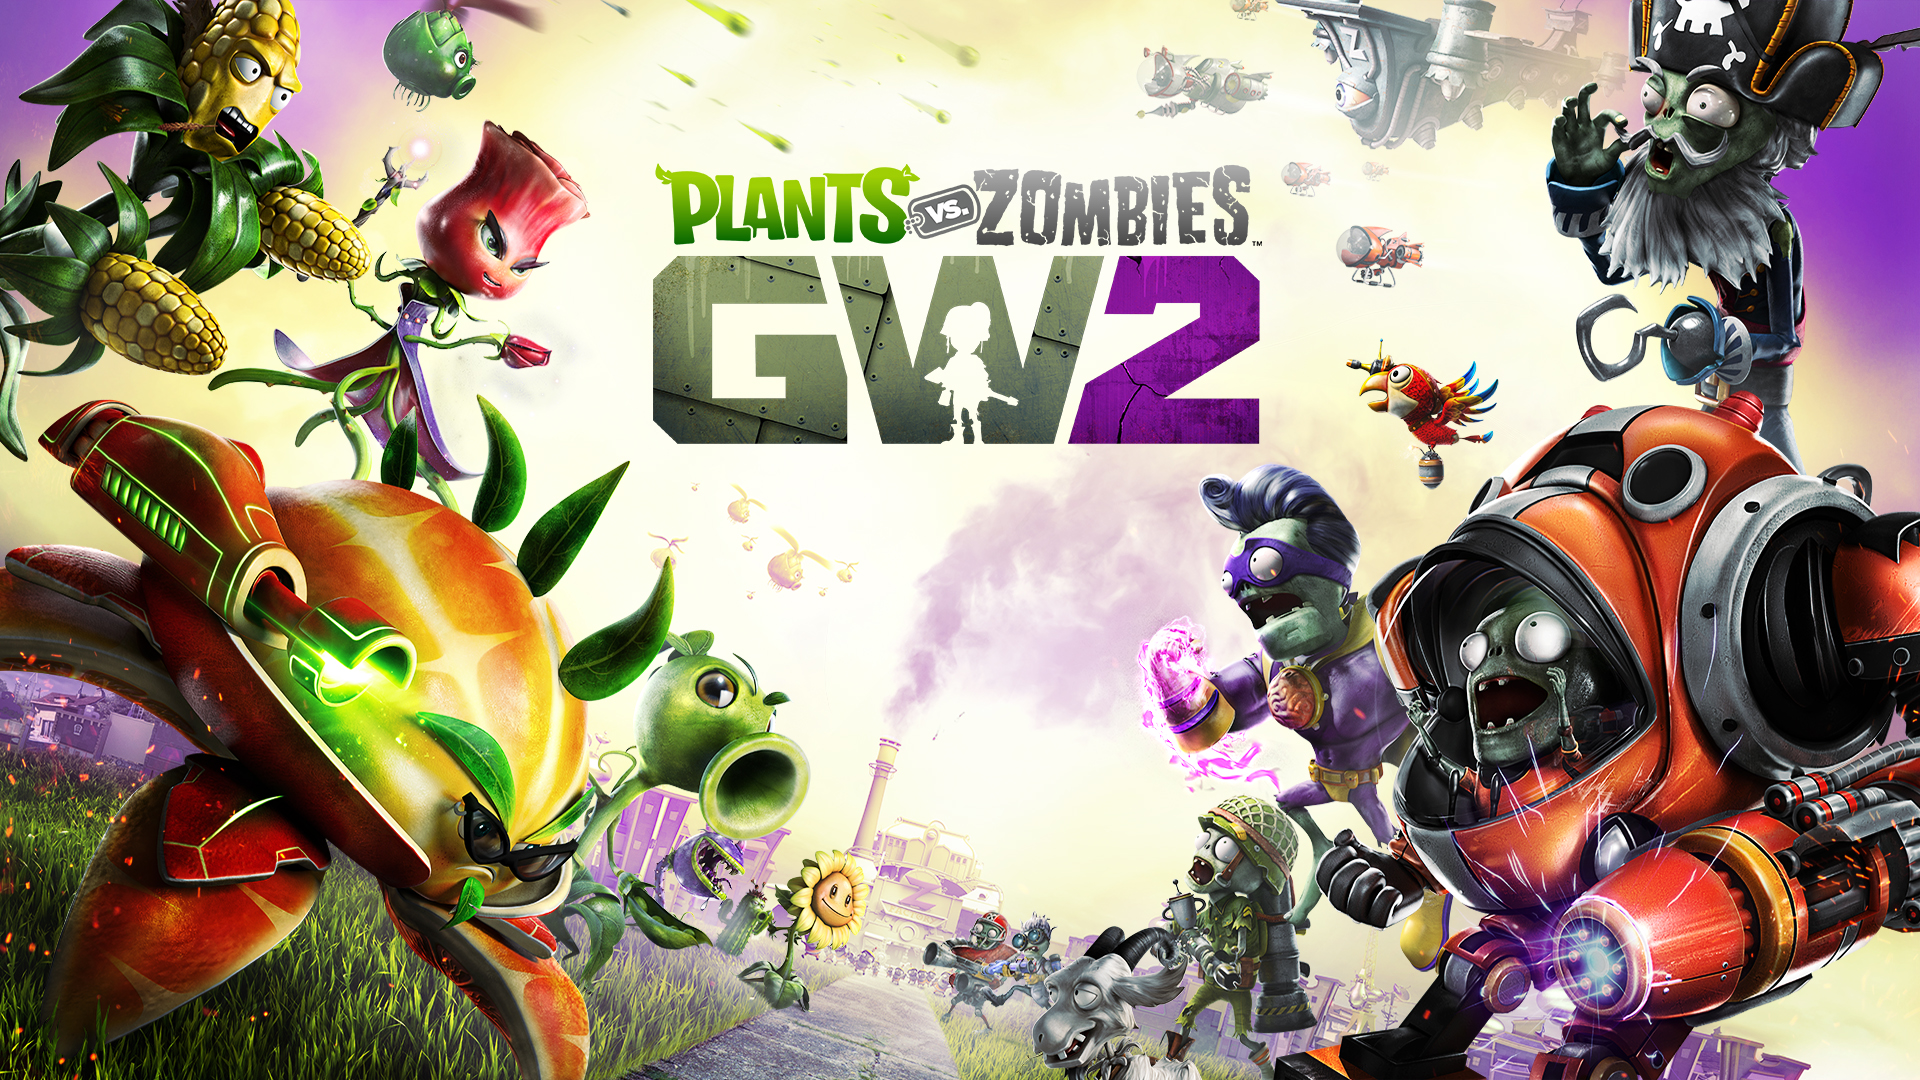 Plants Vs. Zombies Garden Warfare 2 Balance Update For September 7th, 2017 Home Design Ideas